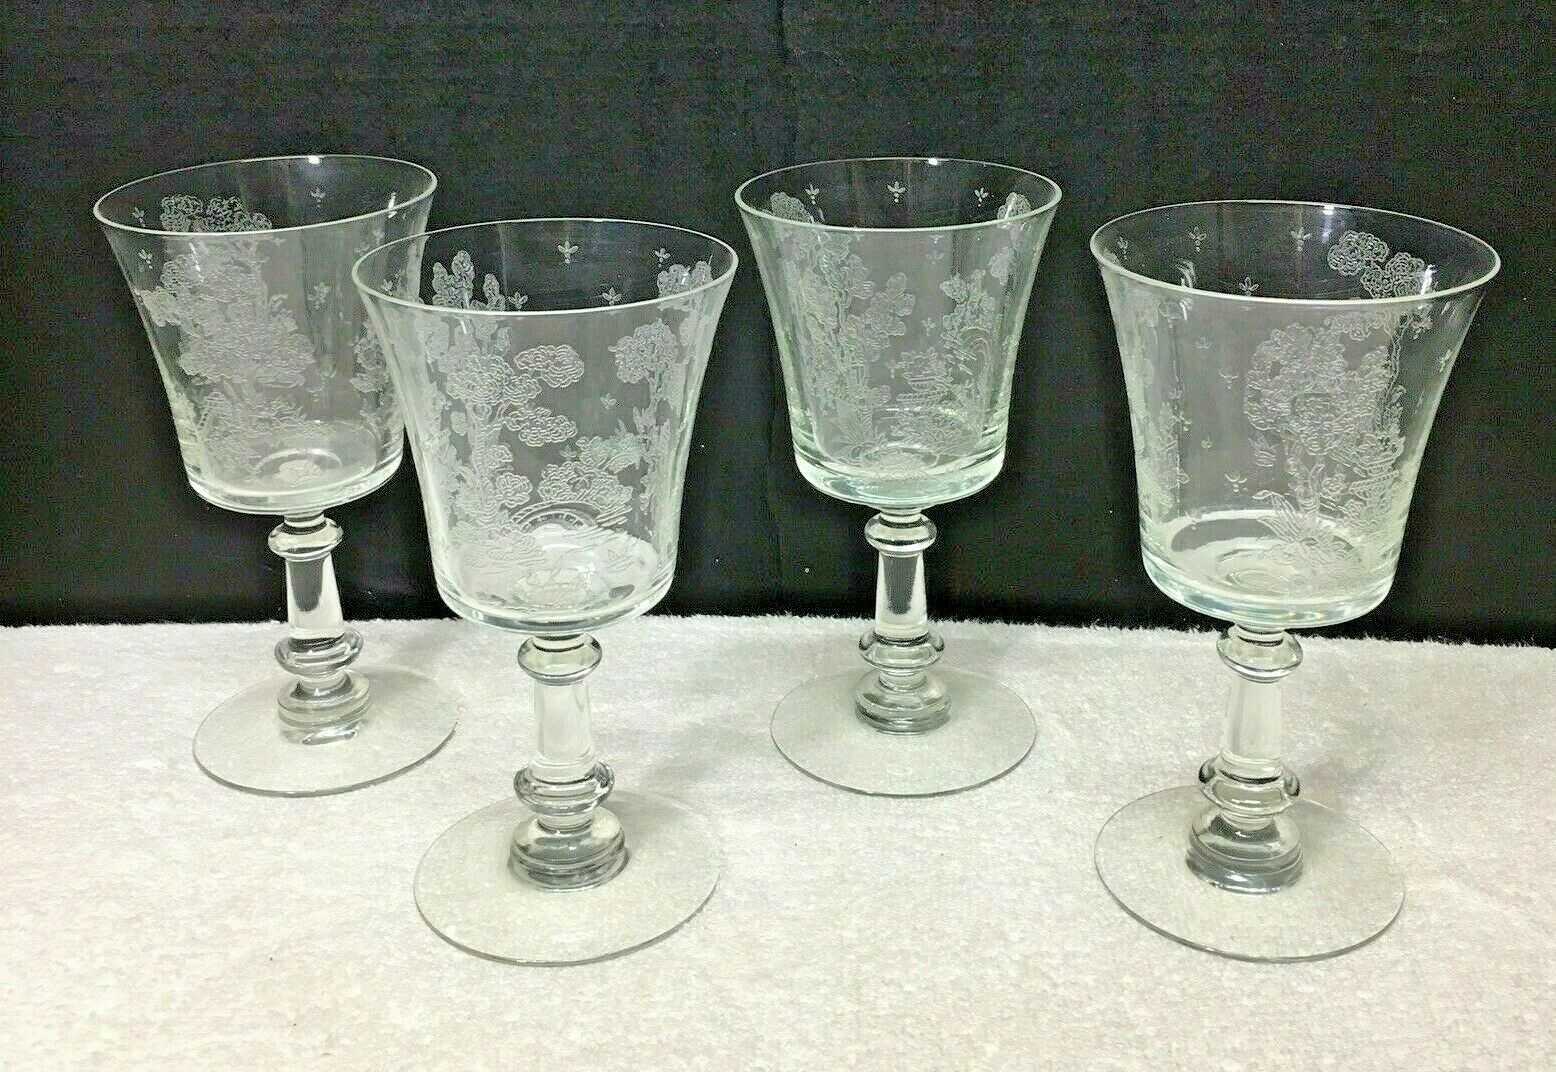 Fostoria Willow Water Wine Glasses Set of 4 6 1/4 Inches Made 1939-1944 - $64.35